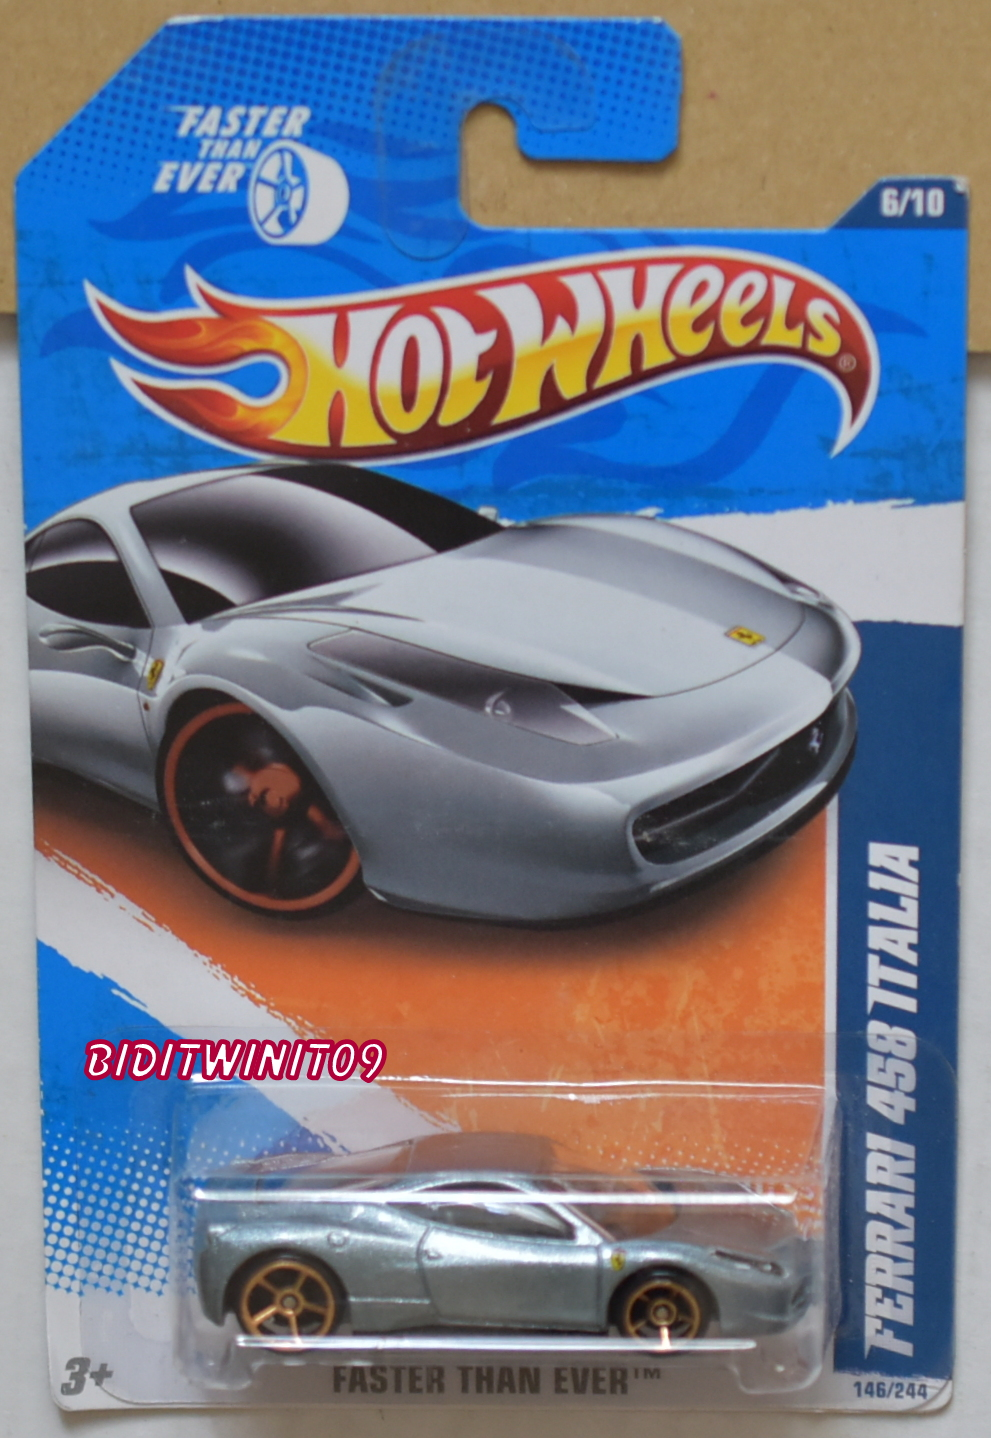 HOT WHEELS 2011 FASTER THAN EVER FERRARI 458 ITALIA GREY E+